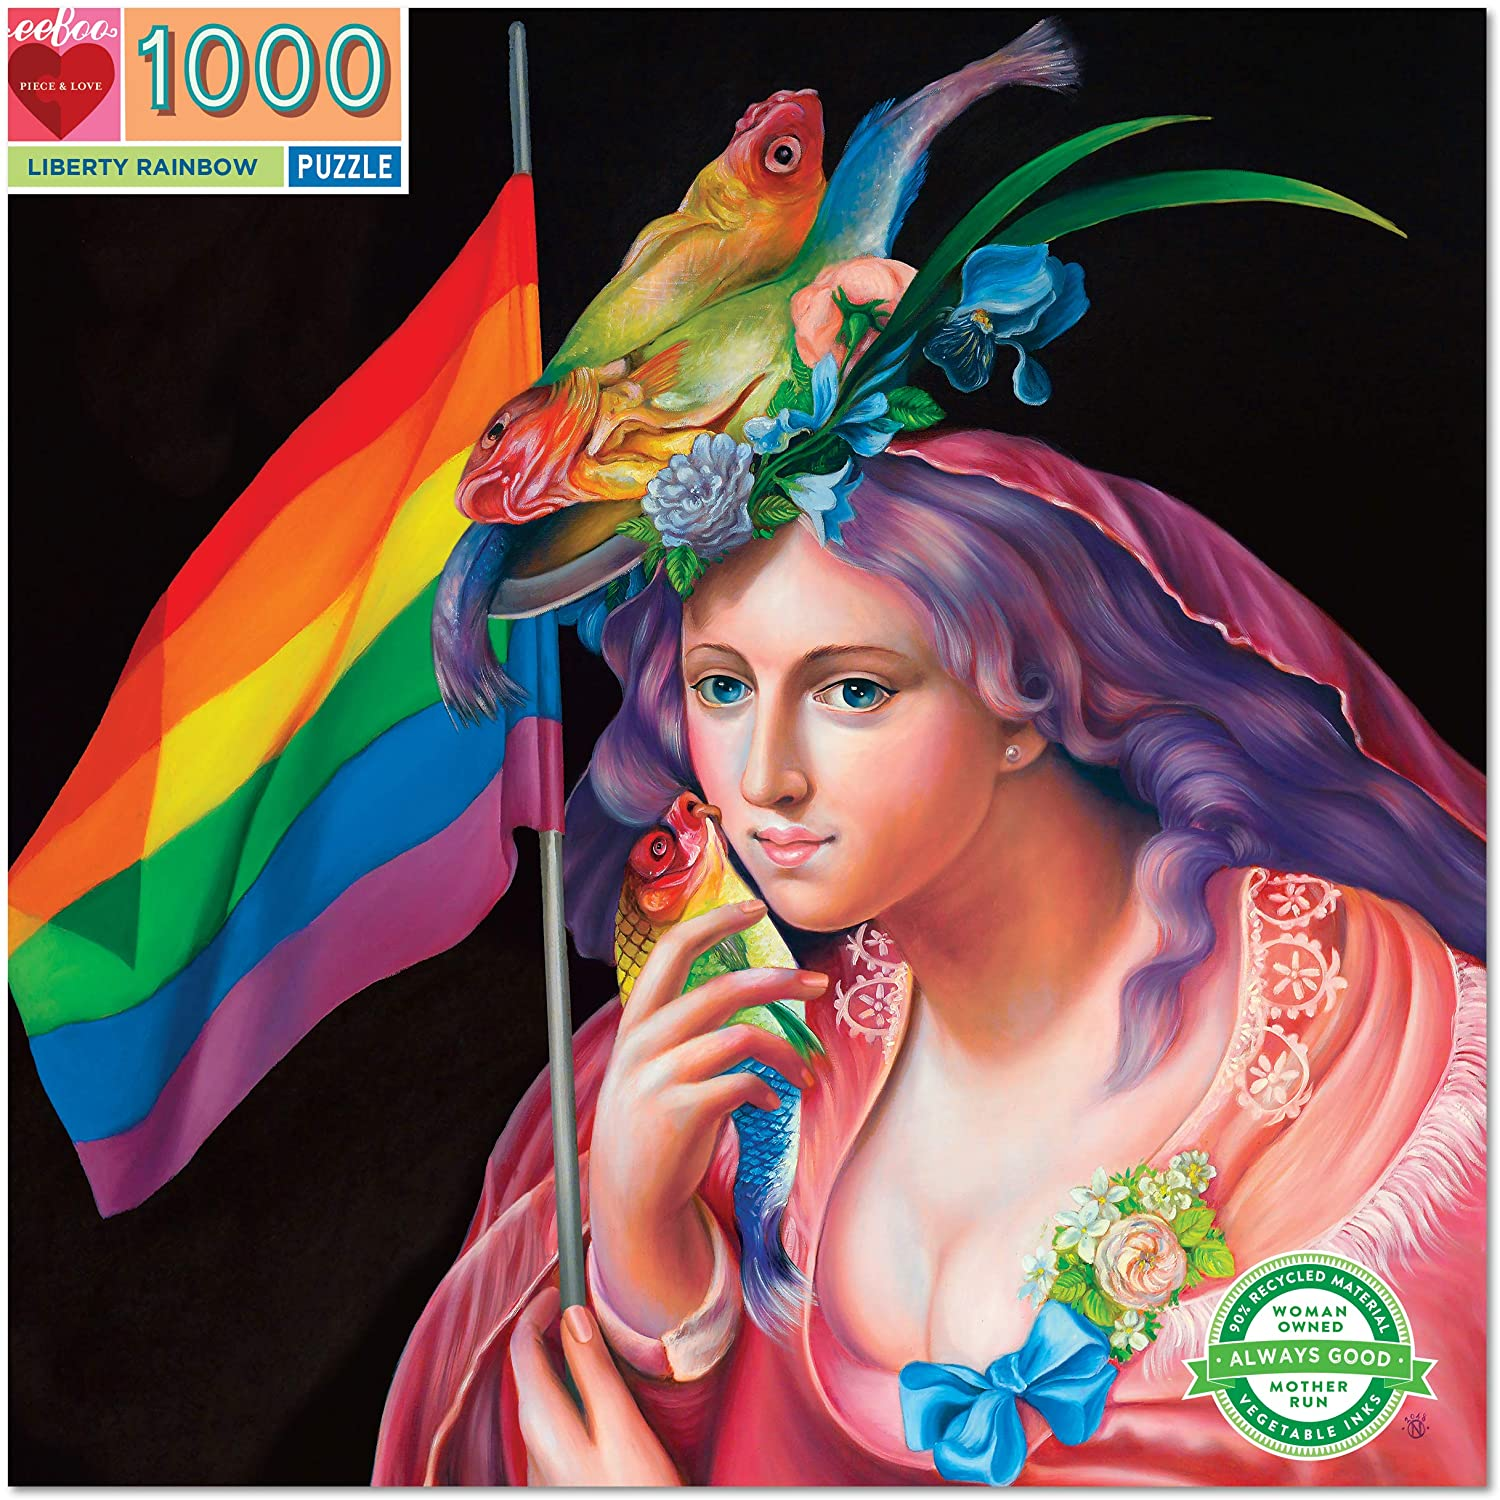 eeBoo Liberty Rainbow 1000 Piece Puzzle for Adults